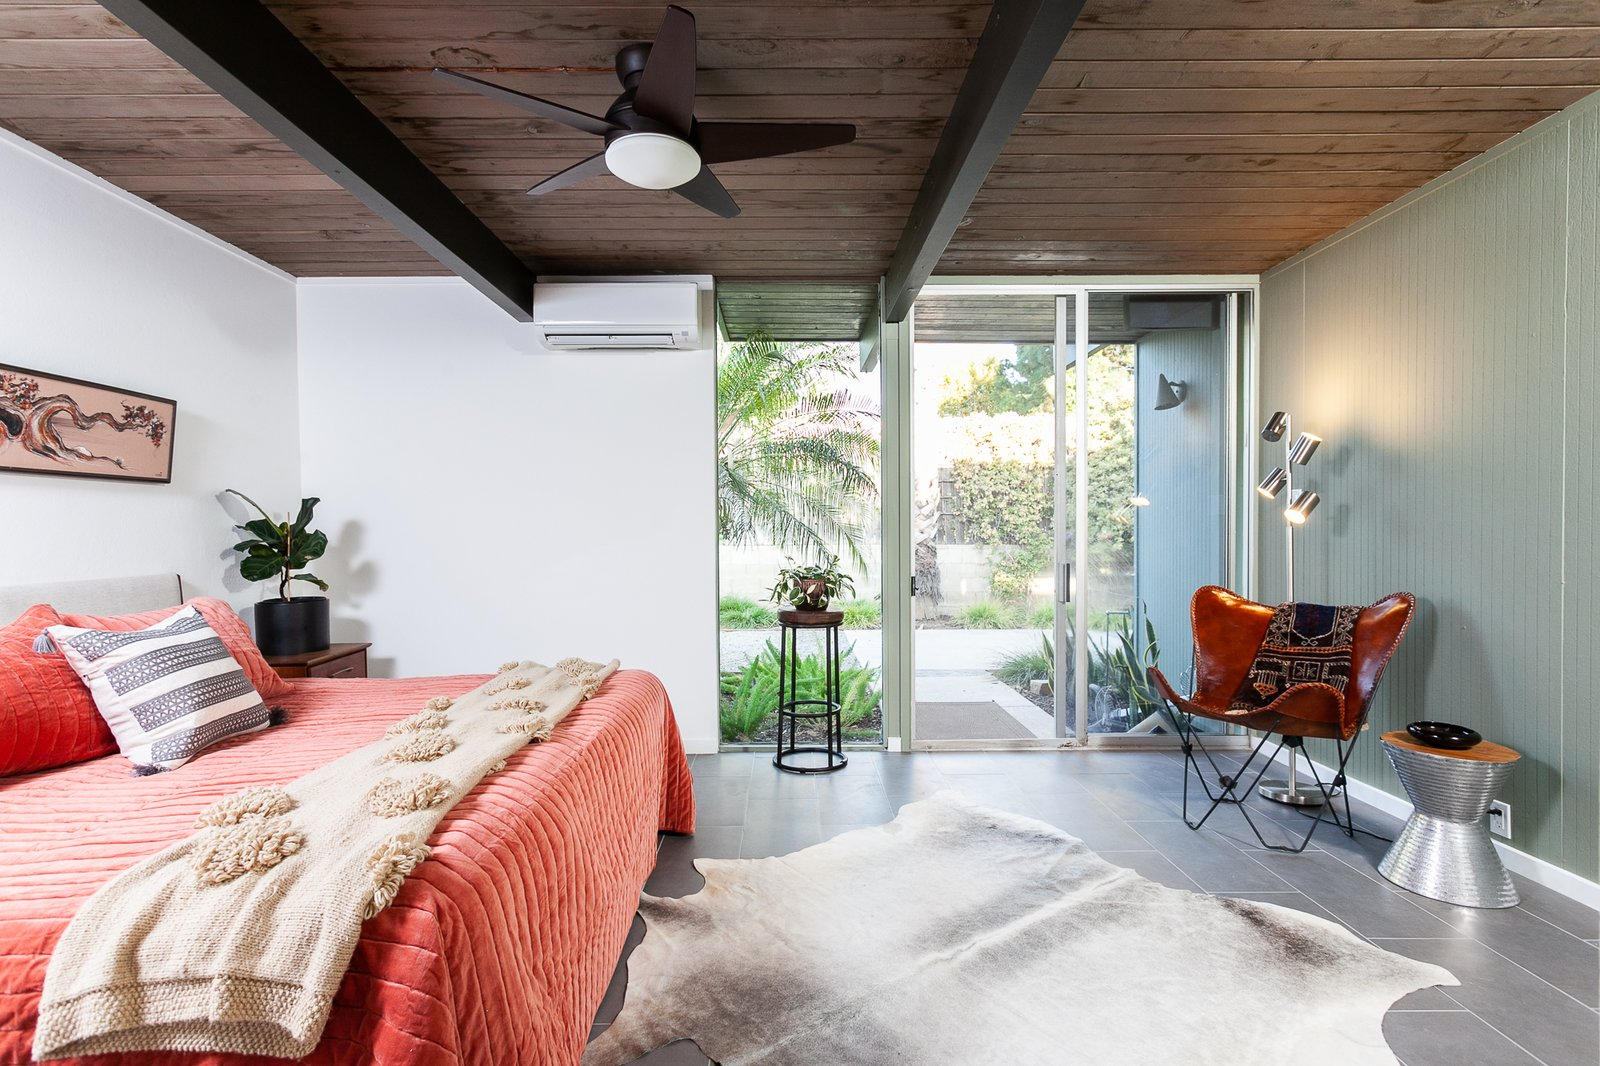 Bedroom, Bed, Rug, Ceiling, Night Stands, Floor, Lamps, Porcelain Tile, and Chair The master bedroom has French doors which lead to the outside.  Best Bedroom Bed Porcelain Tile Ceiling Photos from An Updated Eichler With an Indoor-Outdoor Master Bath Seeks $1.15M